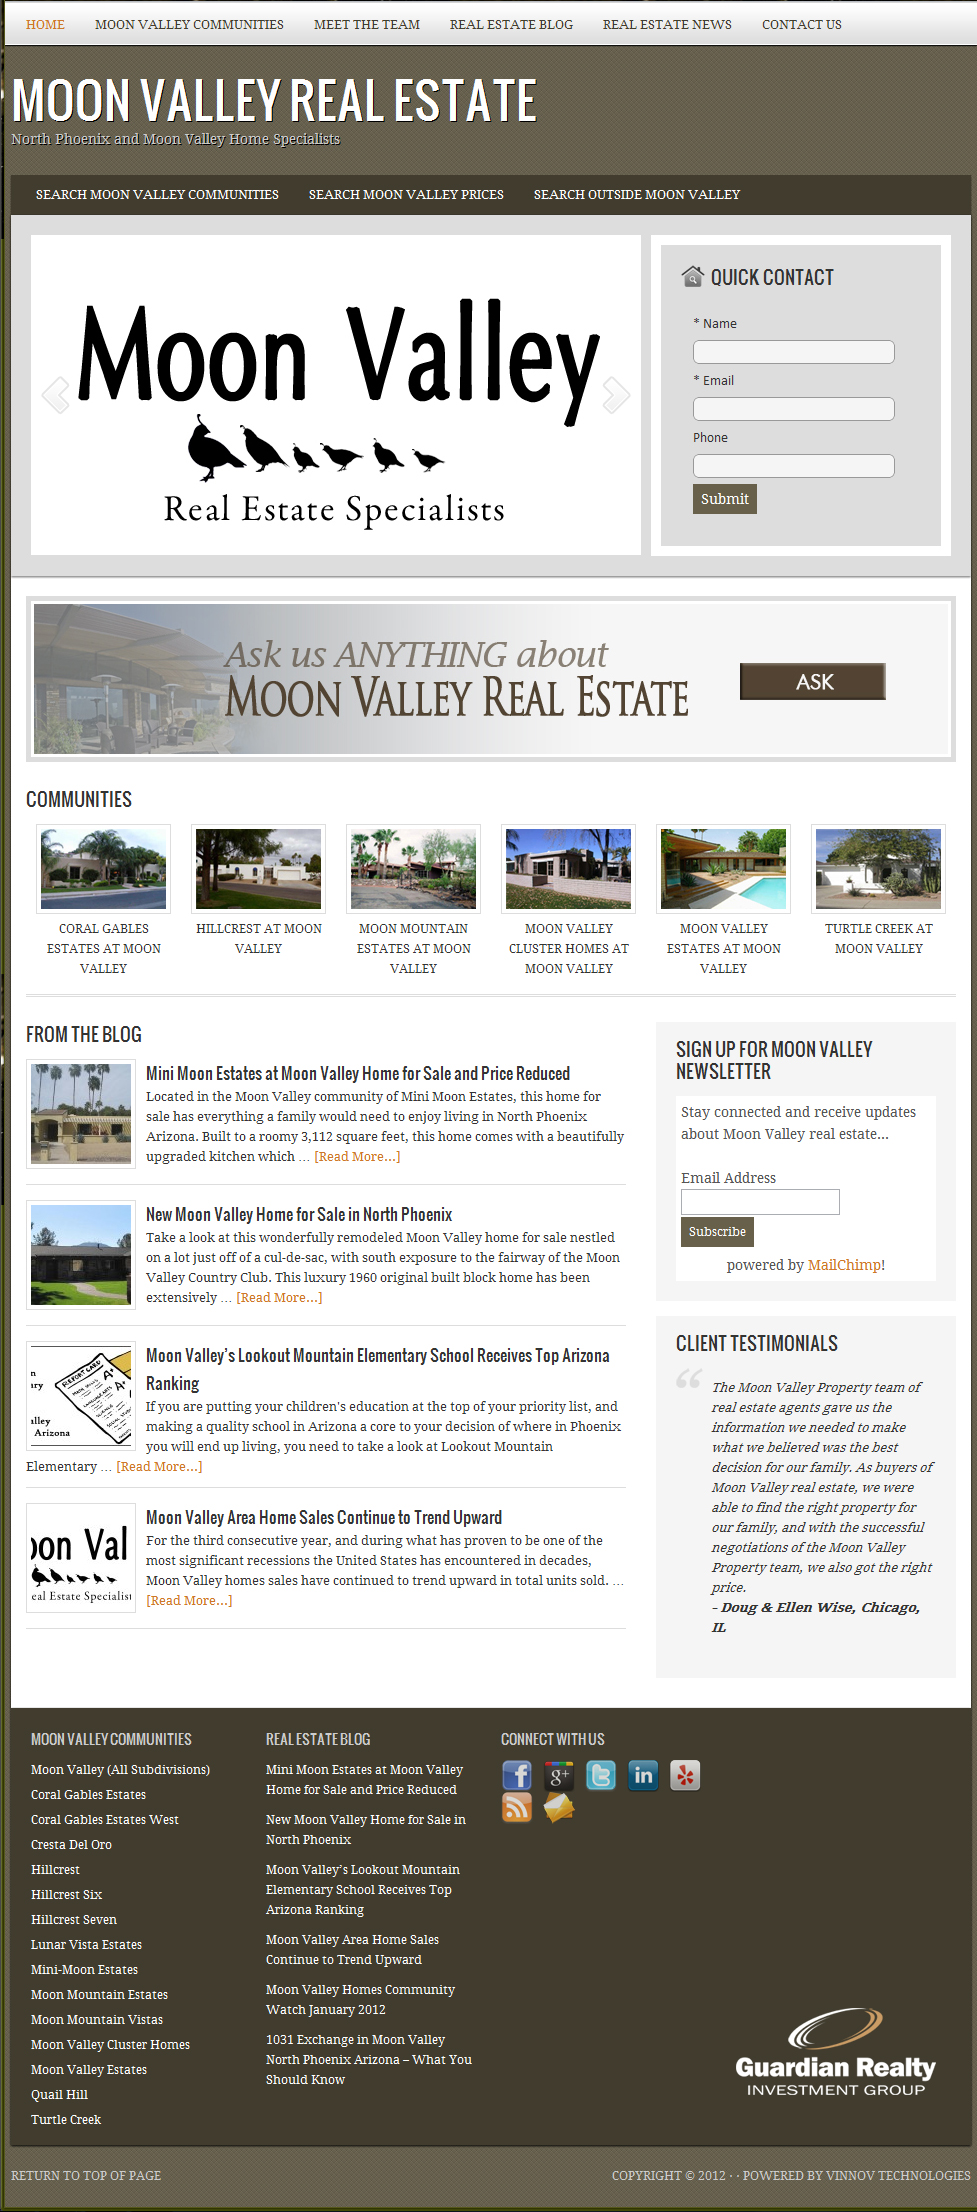 Search Moon Valley property and real estate listings in North Phoenix Arizona.